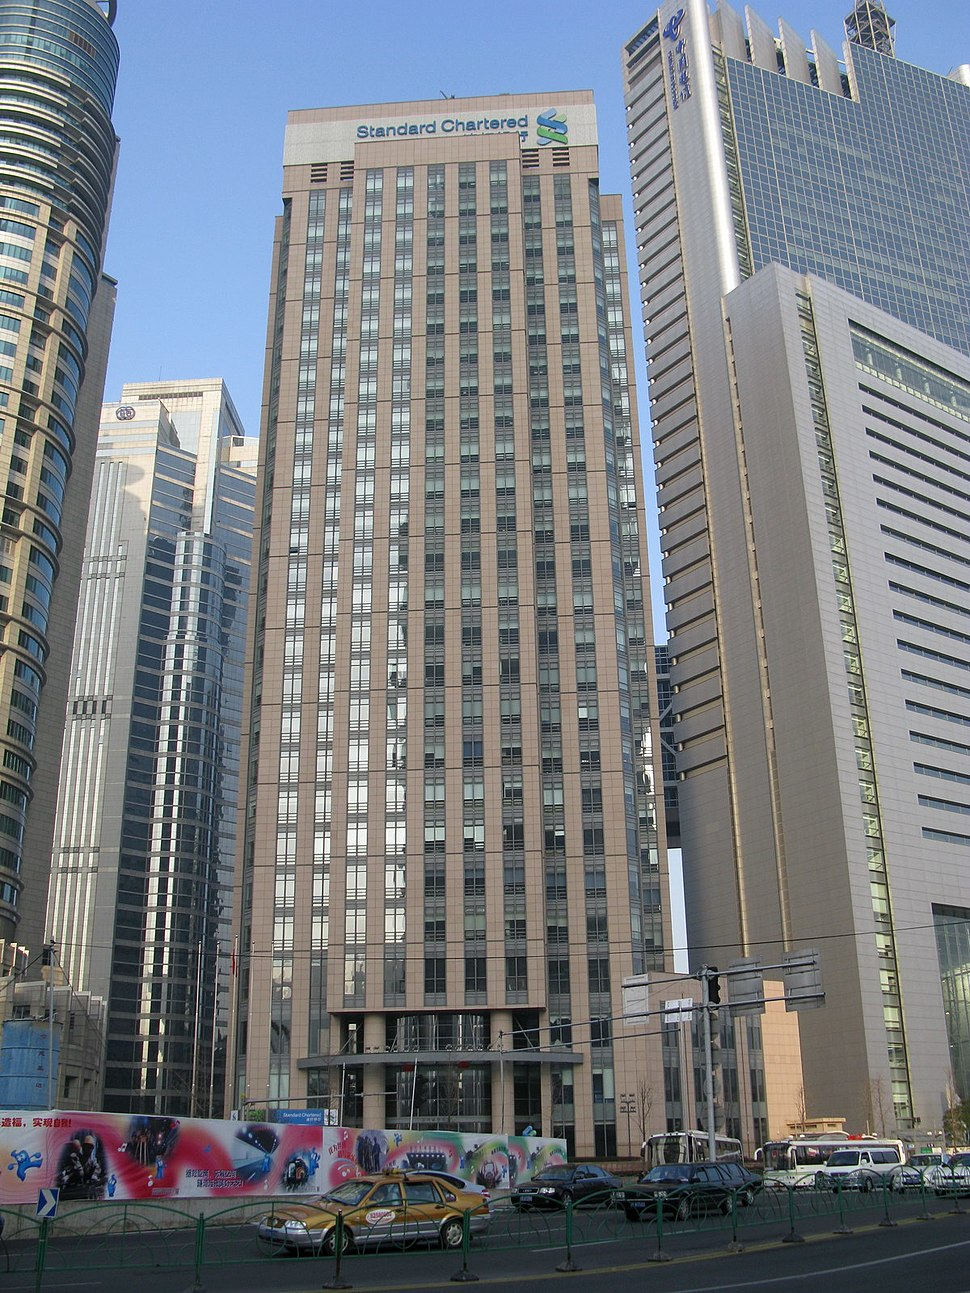 Standard Chartered Bank Tower